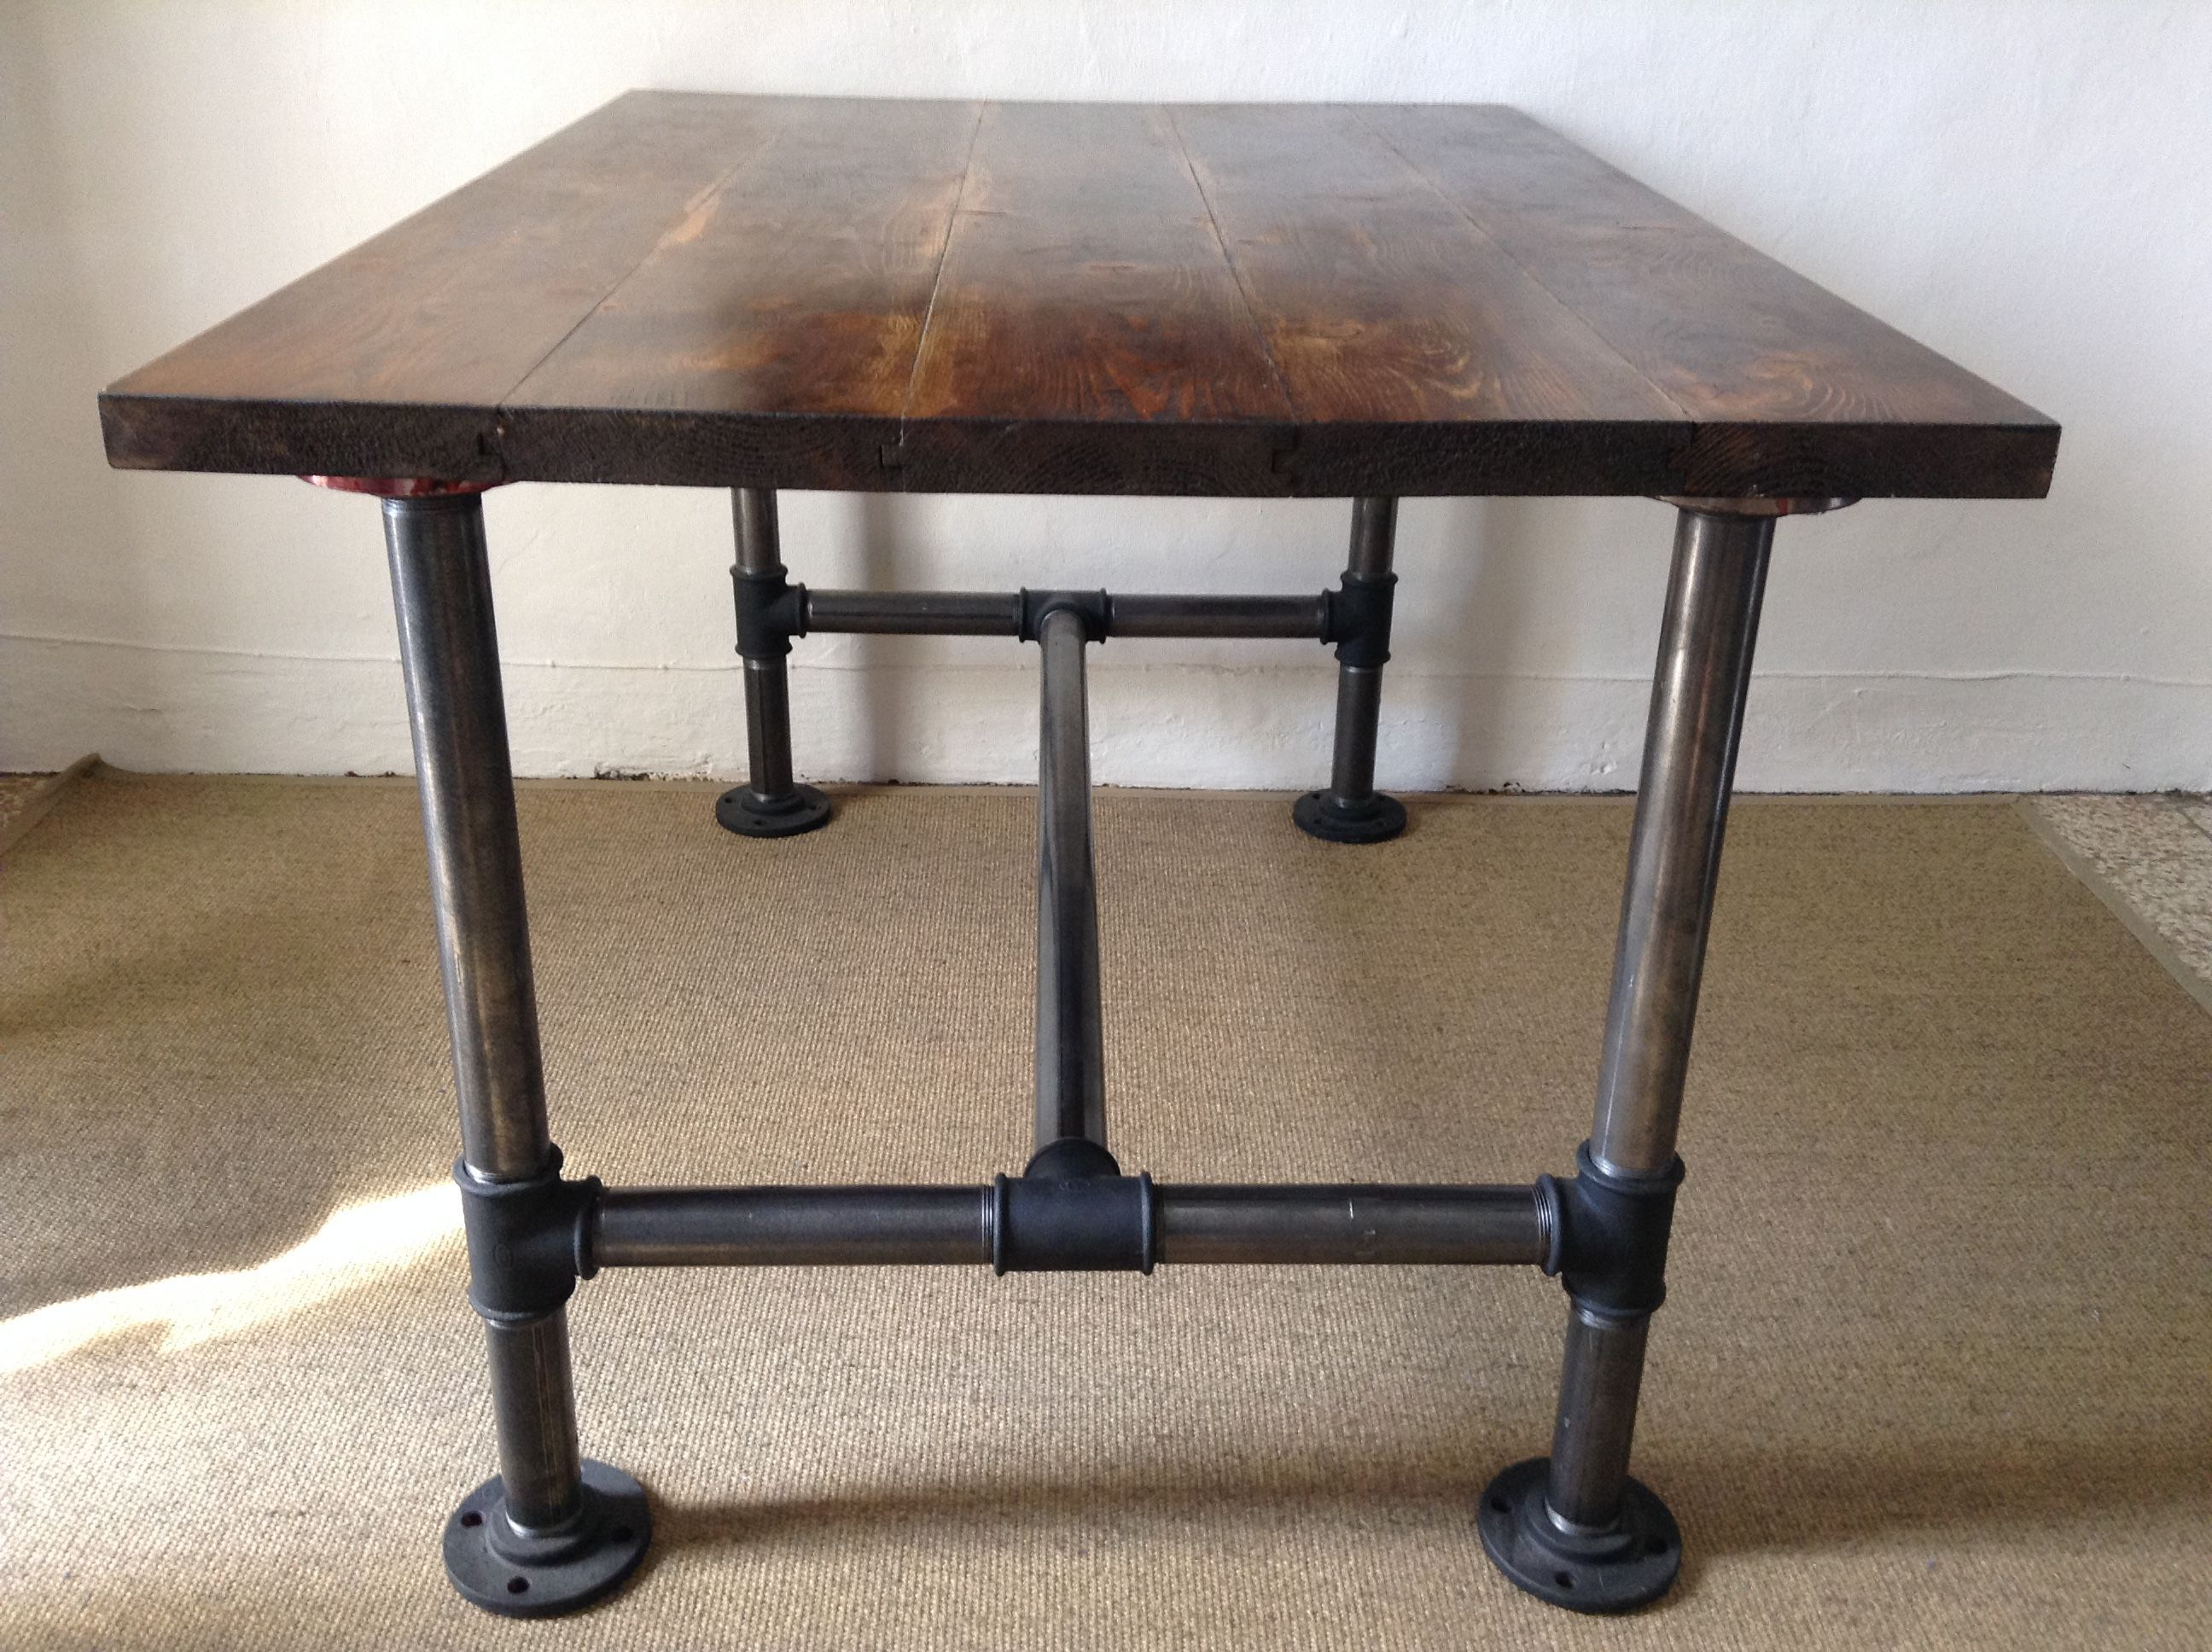 Cabinet Winsome Galvanized Steel Table 16 Galvanized Steel Table Legs